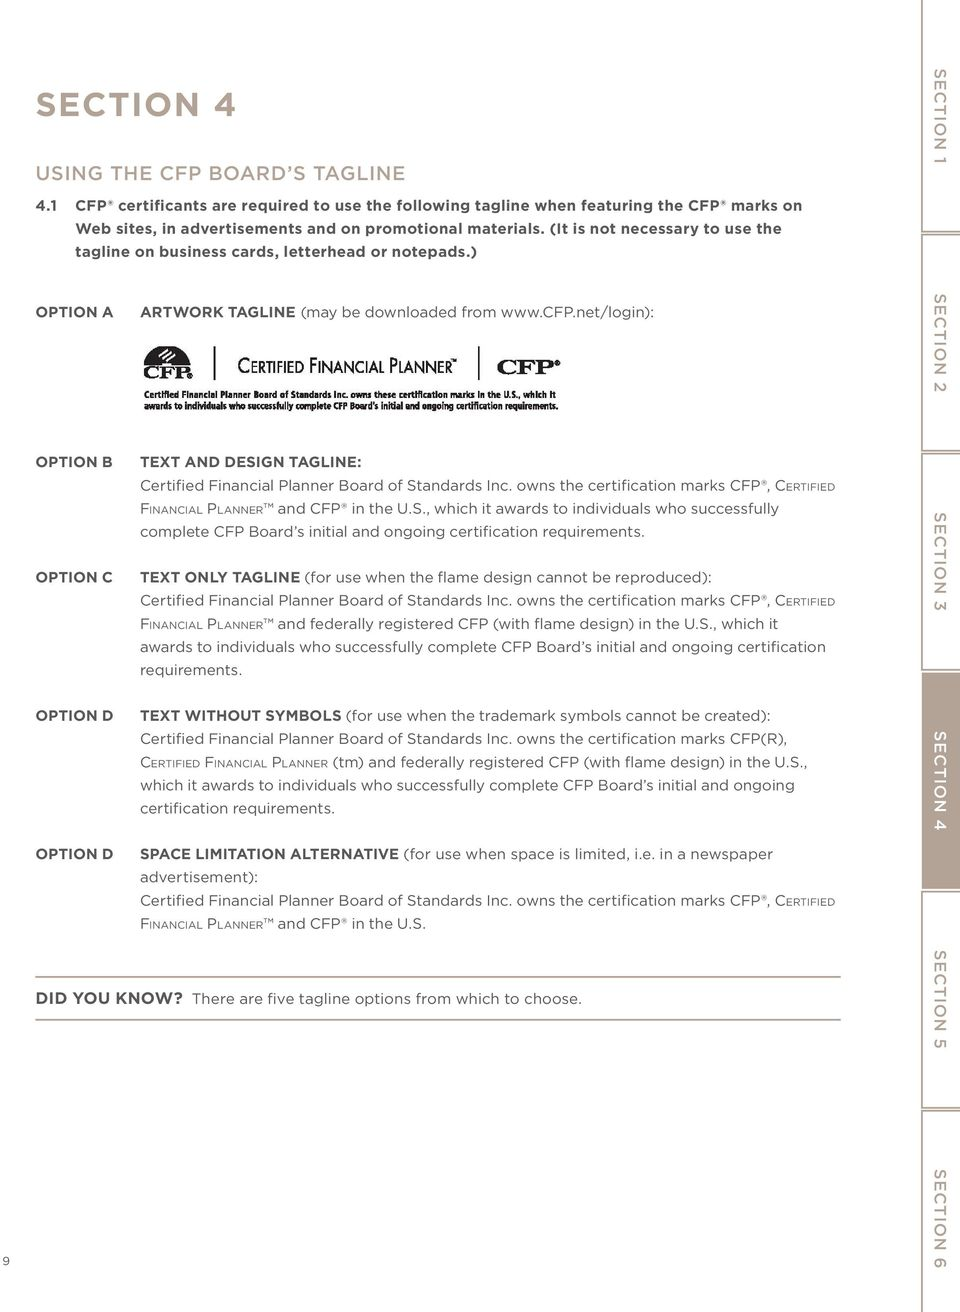 net/login): OPTION B TEXT AND DESIGN TAGLINE: Certified Financial Planner Board of Standards Inc. owns the certification marks CFP, Certified Financial Planner and CFP in the U.S., which it awards to individuals who successfully complete CFP Board s initial and ongoing certification requirements.